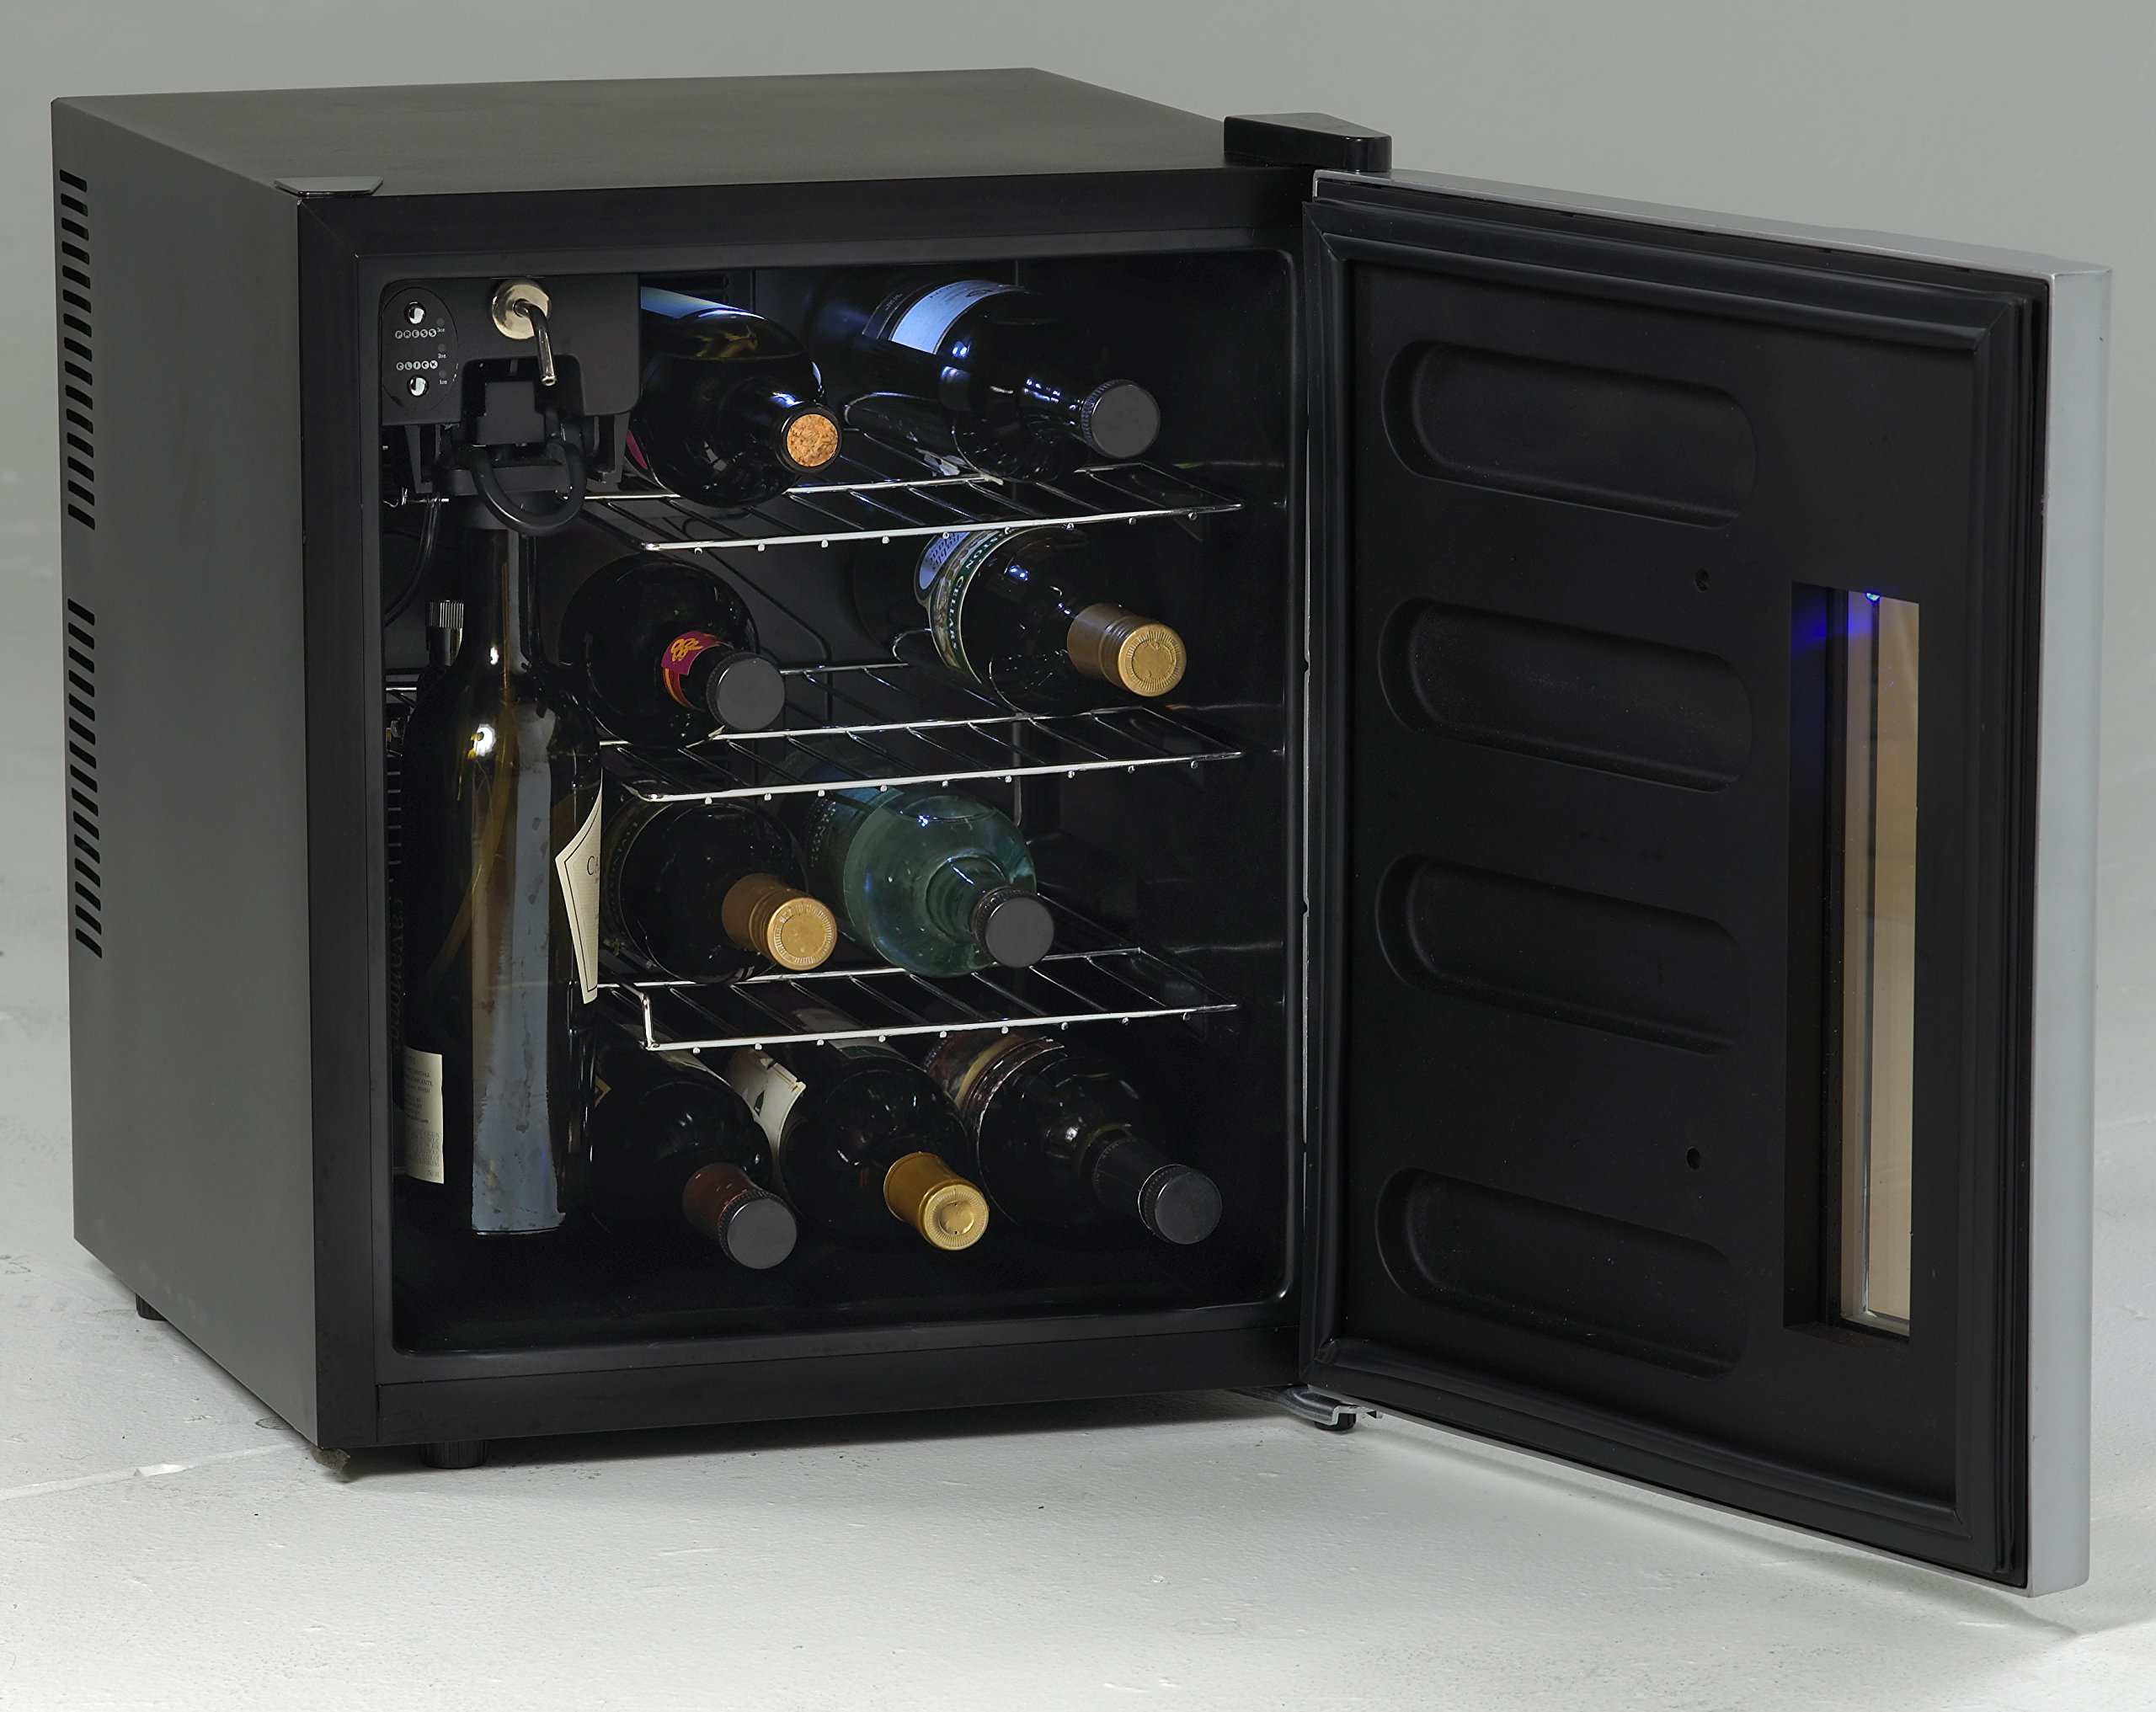 Avanti WCP13-IS 18'' Wine Chiller Preserver/ Dispenser with 13 Bottle Wine Preservation Argon Gas Wine Preservation Thermoelectric Cooling System and Interior LED Lighting in